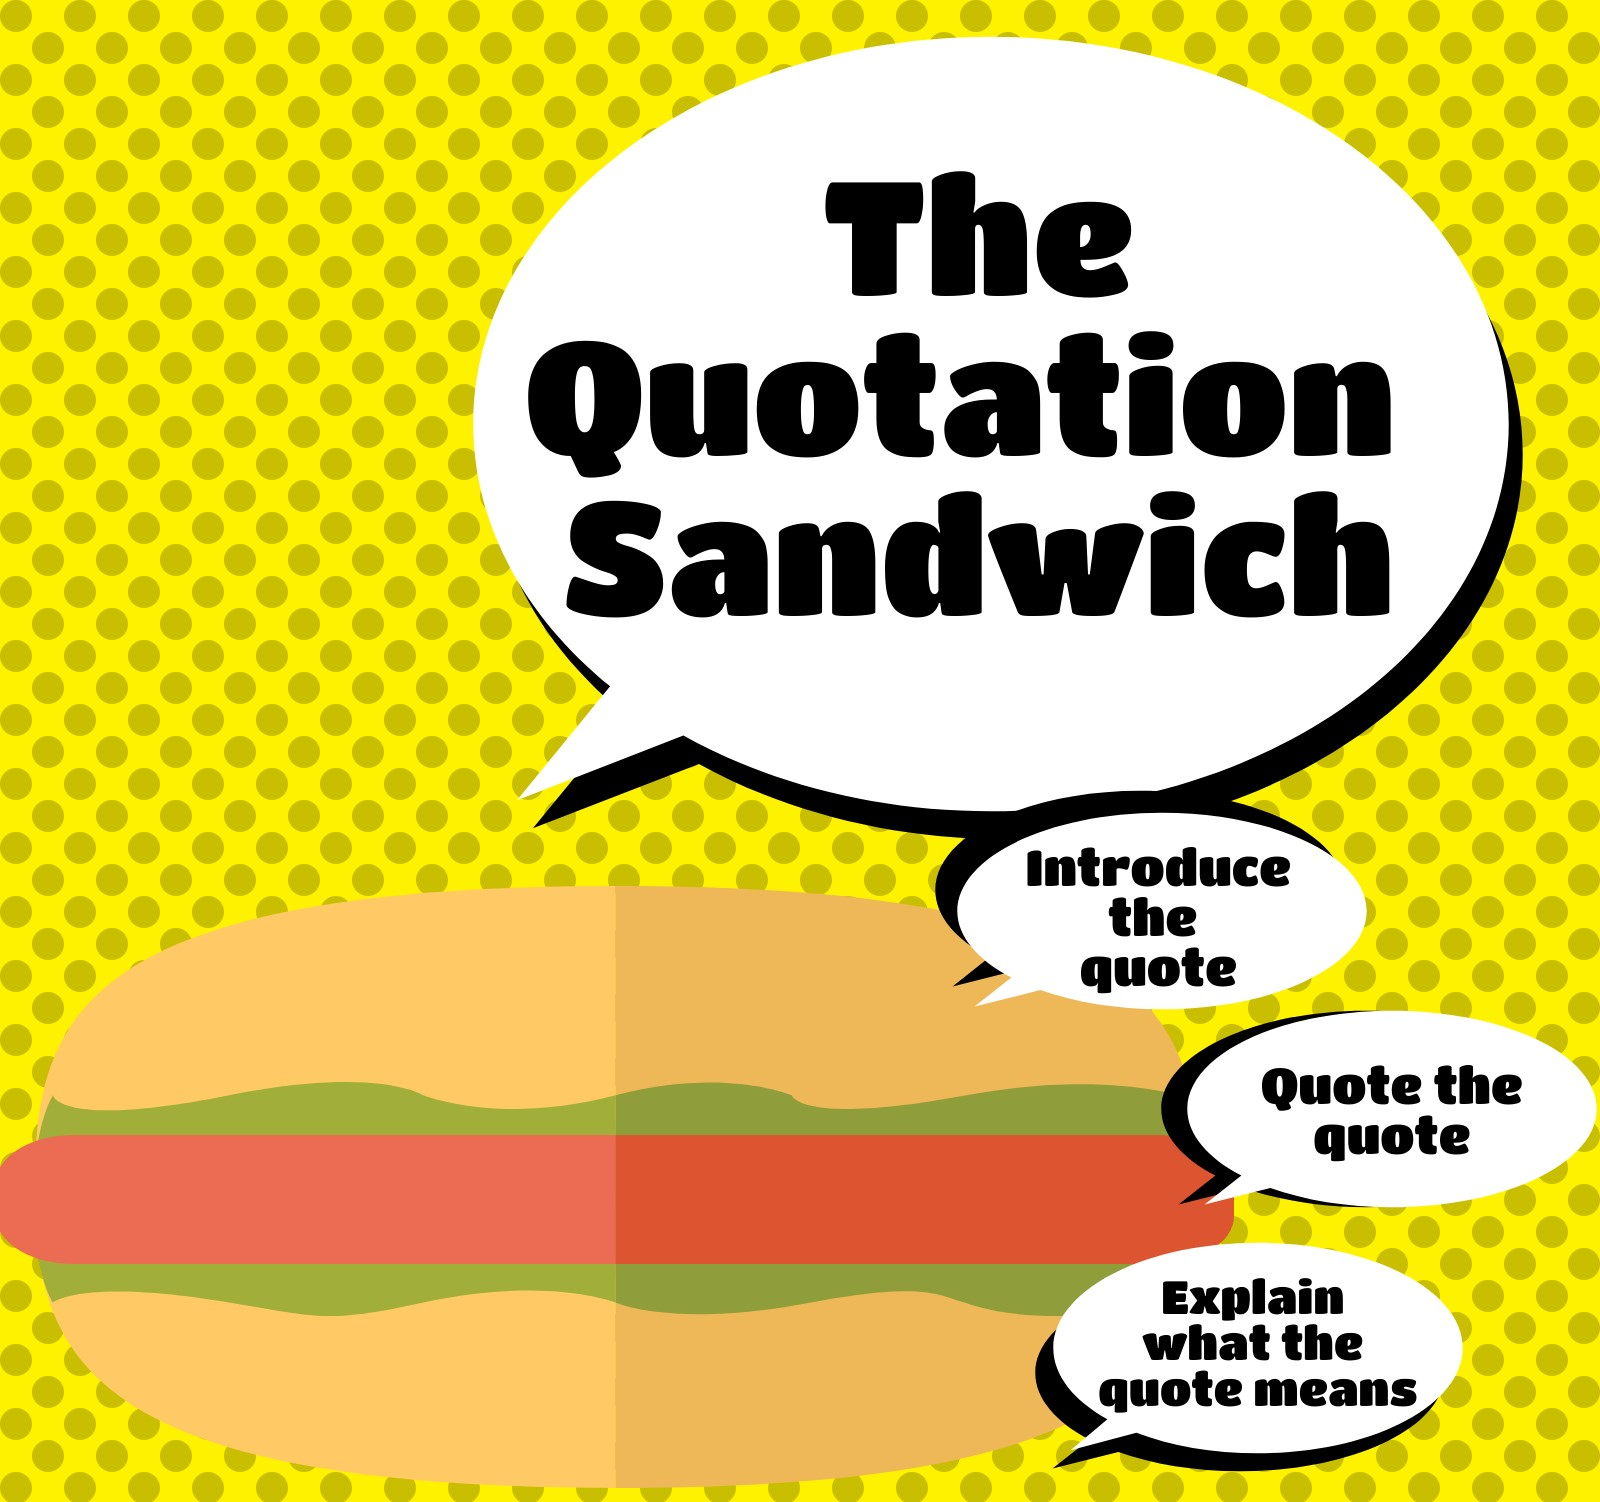 """A graphic shows a sub sandwich with four text boxes around it saying, """"The quotation sandwich,"""" """"Introduce the quote,"""" """"Quote the quote,"""" """"Explain what the quote means"""""""